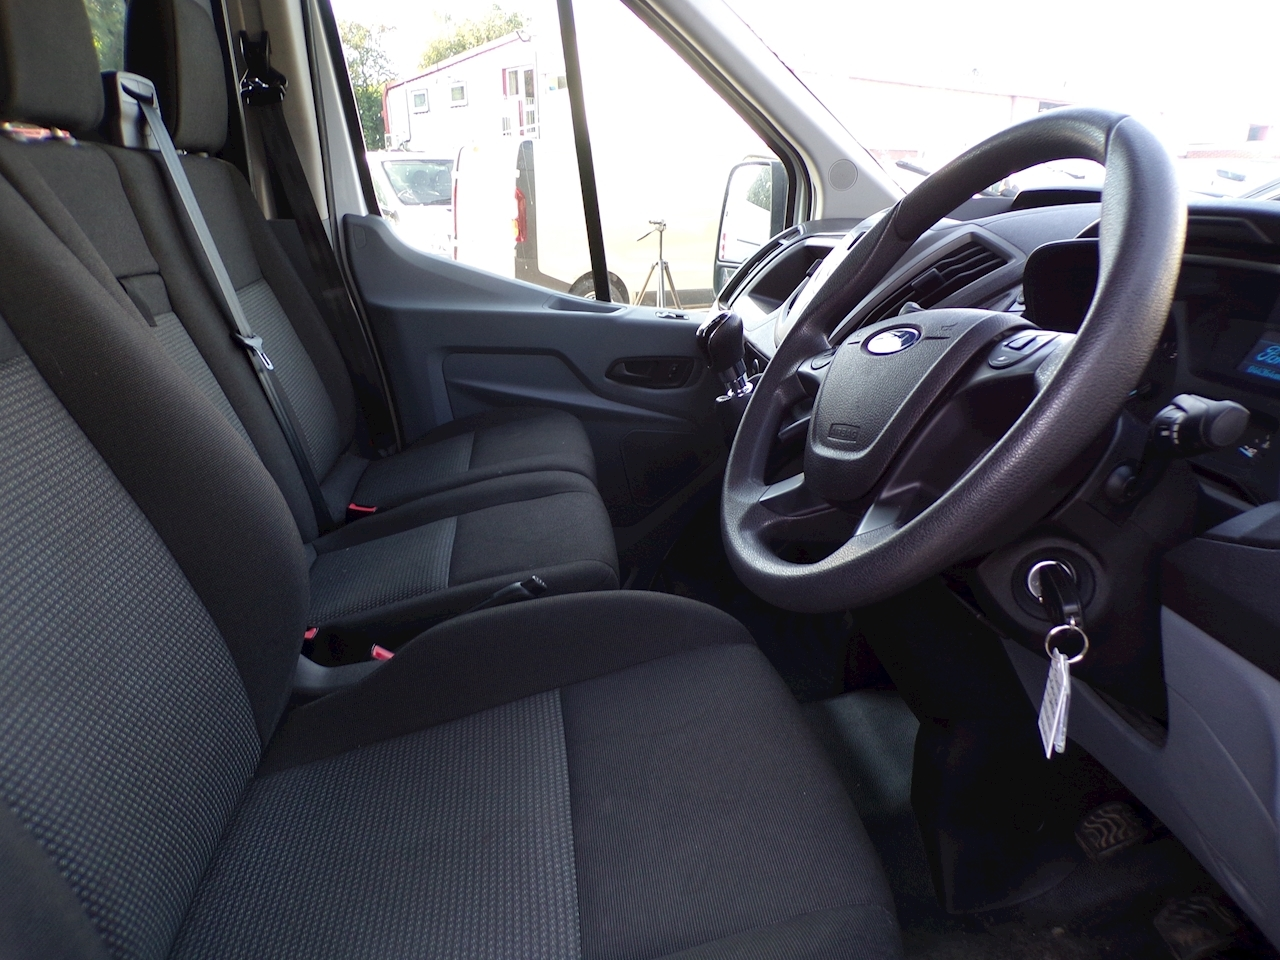 Ford Transit 350 High roof  crew van 9 seater